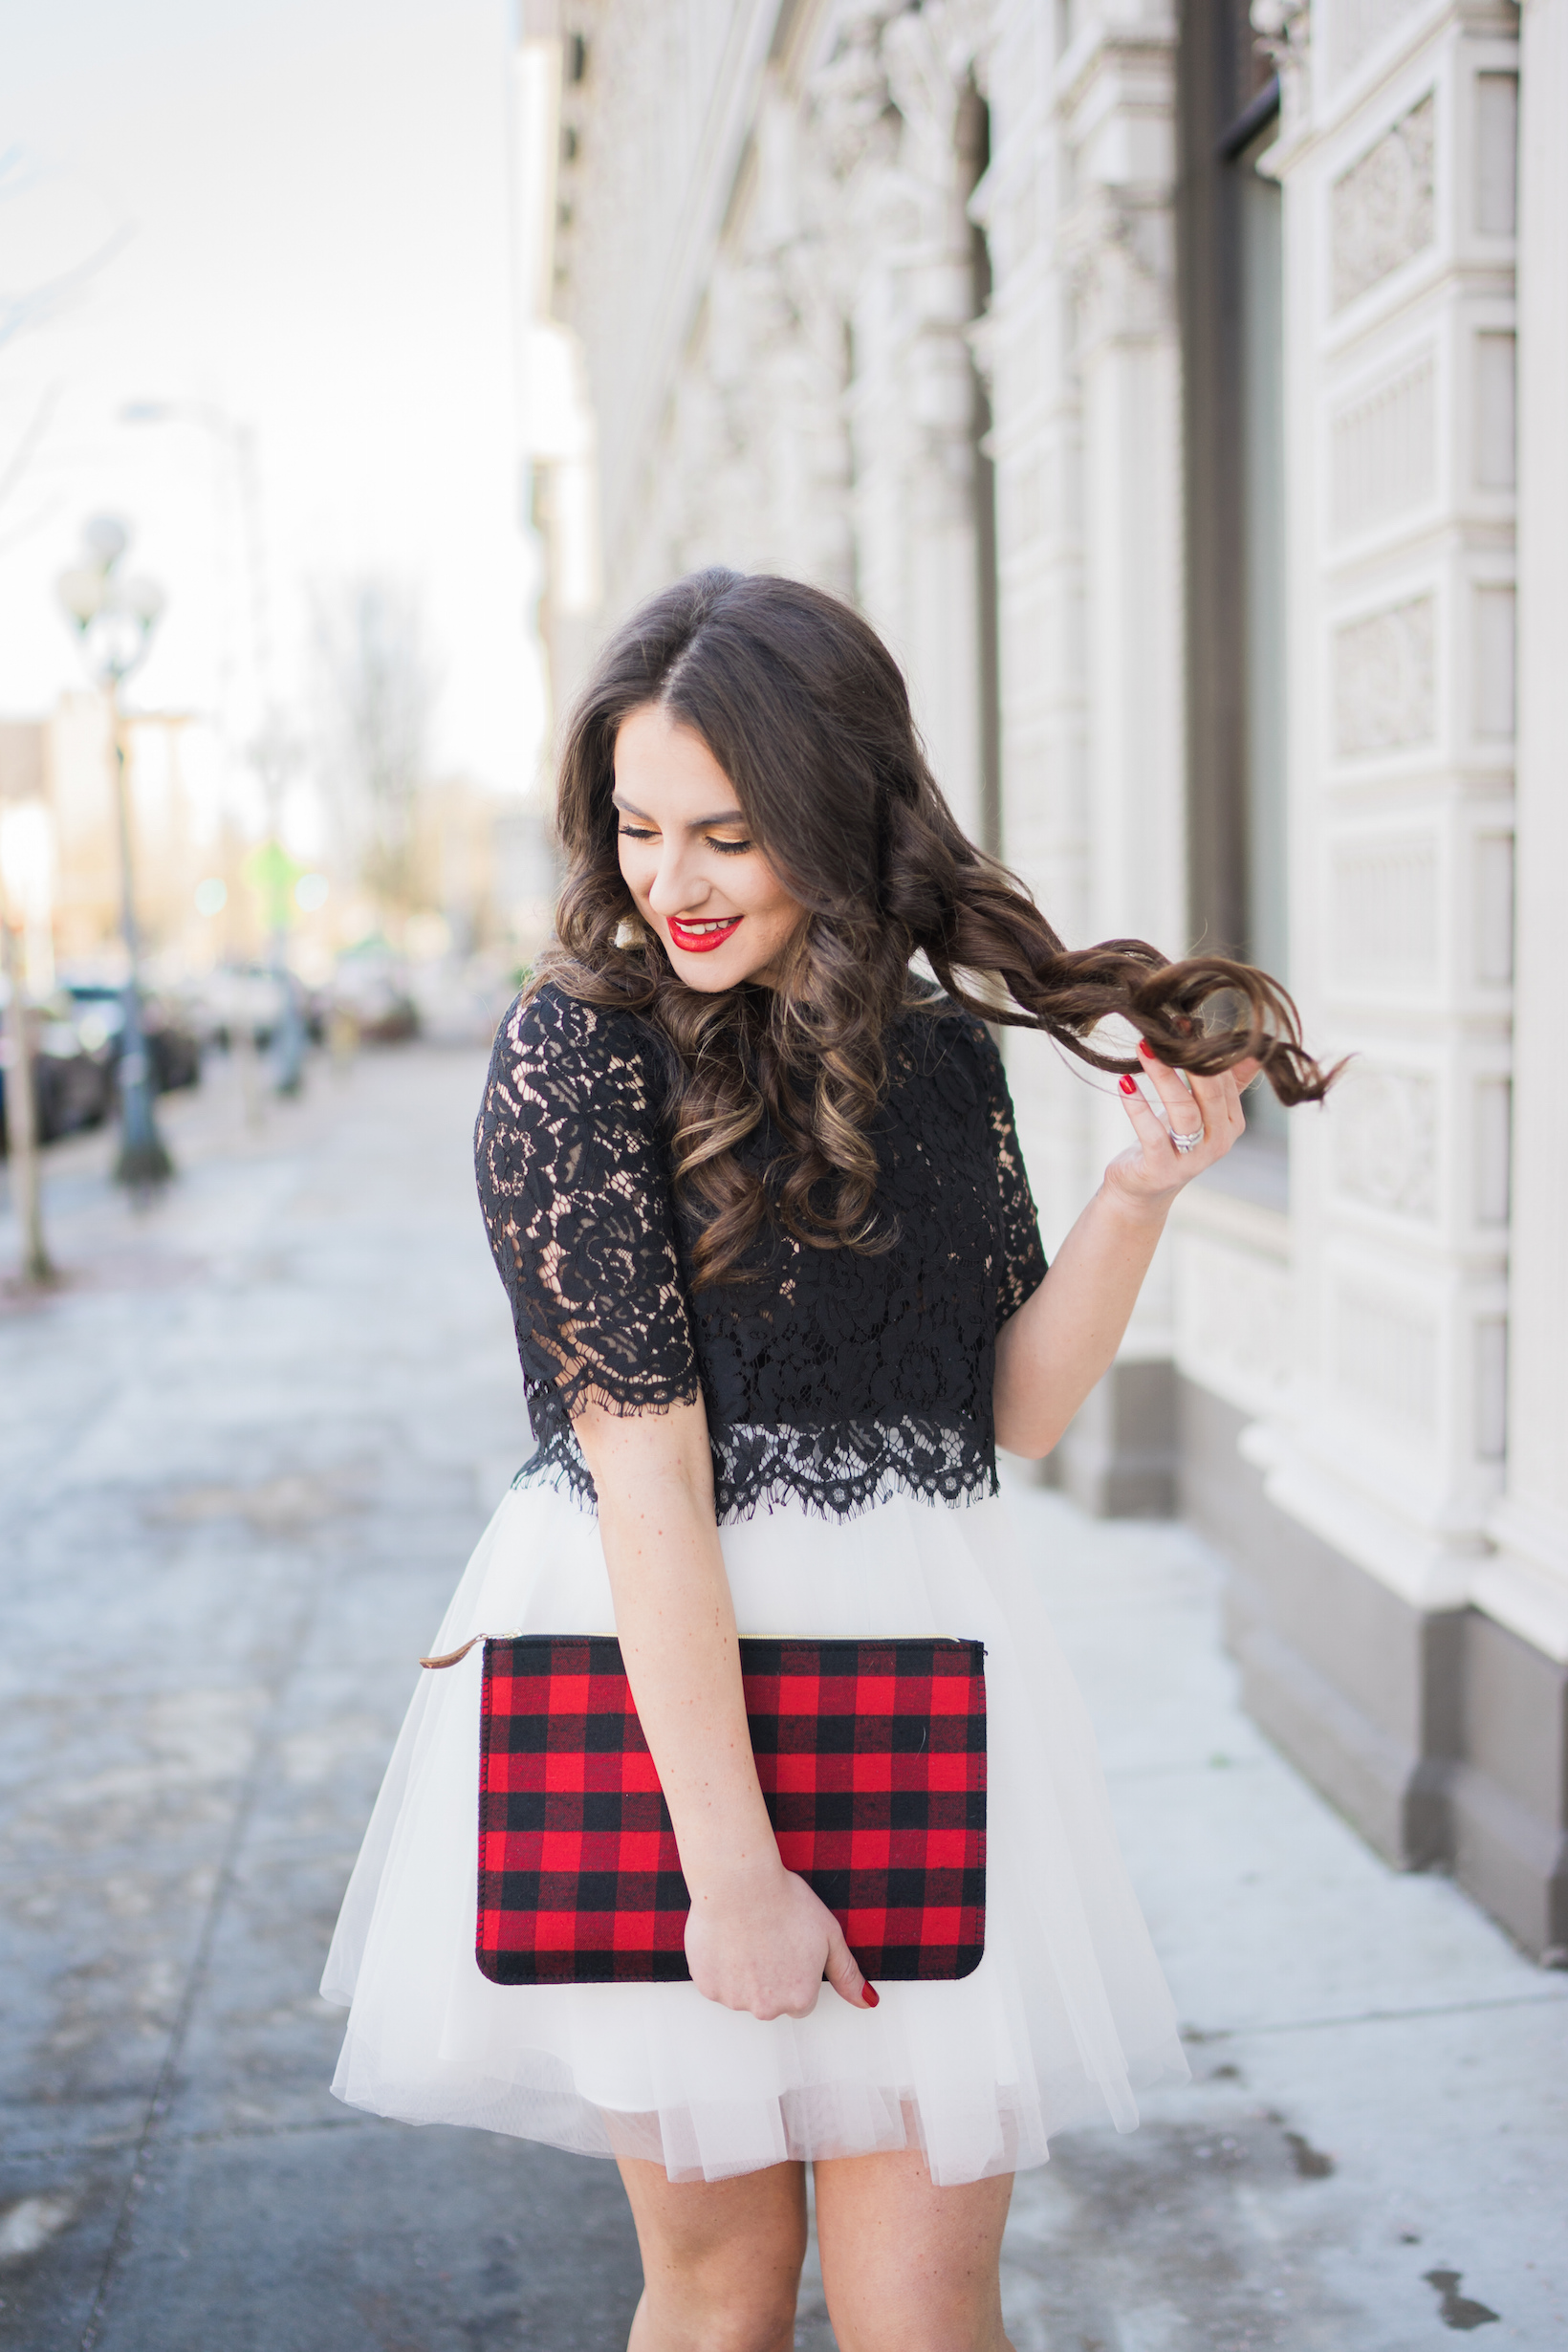 e433baa651 My final Holiday outfit that I will be wearing until it's not seasonally  appropriate is the best tulle skirt combo! I die. It's perfect! Explaining  how to ...